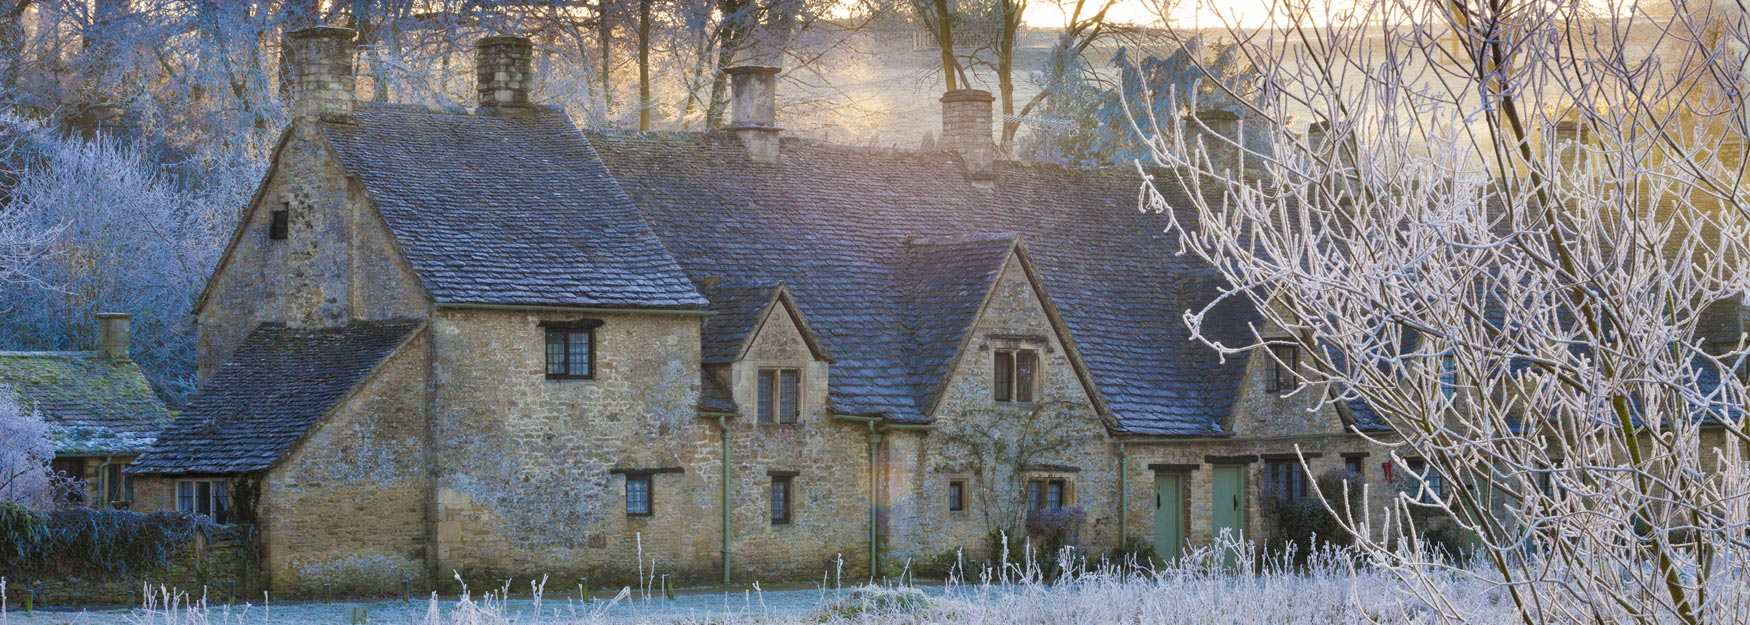 Arlington Row in Bibury on a crisp and frosty morning